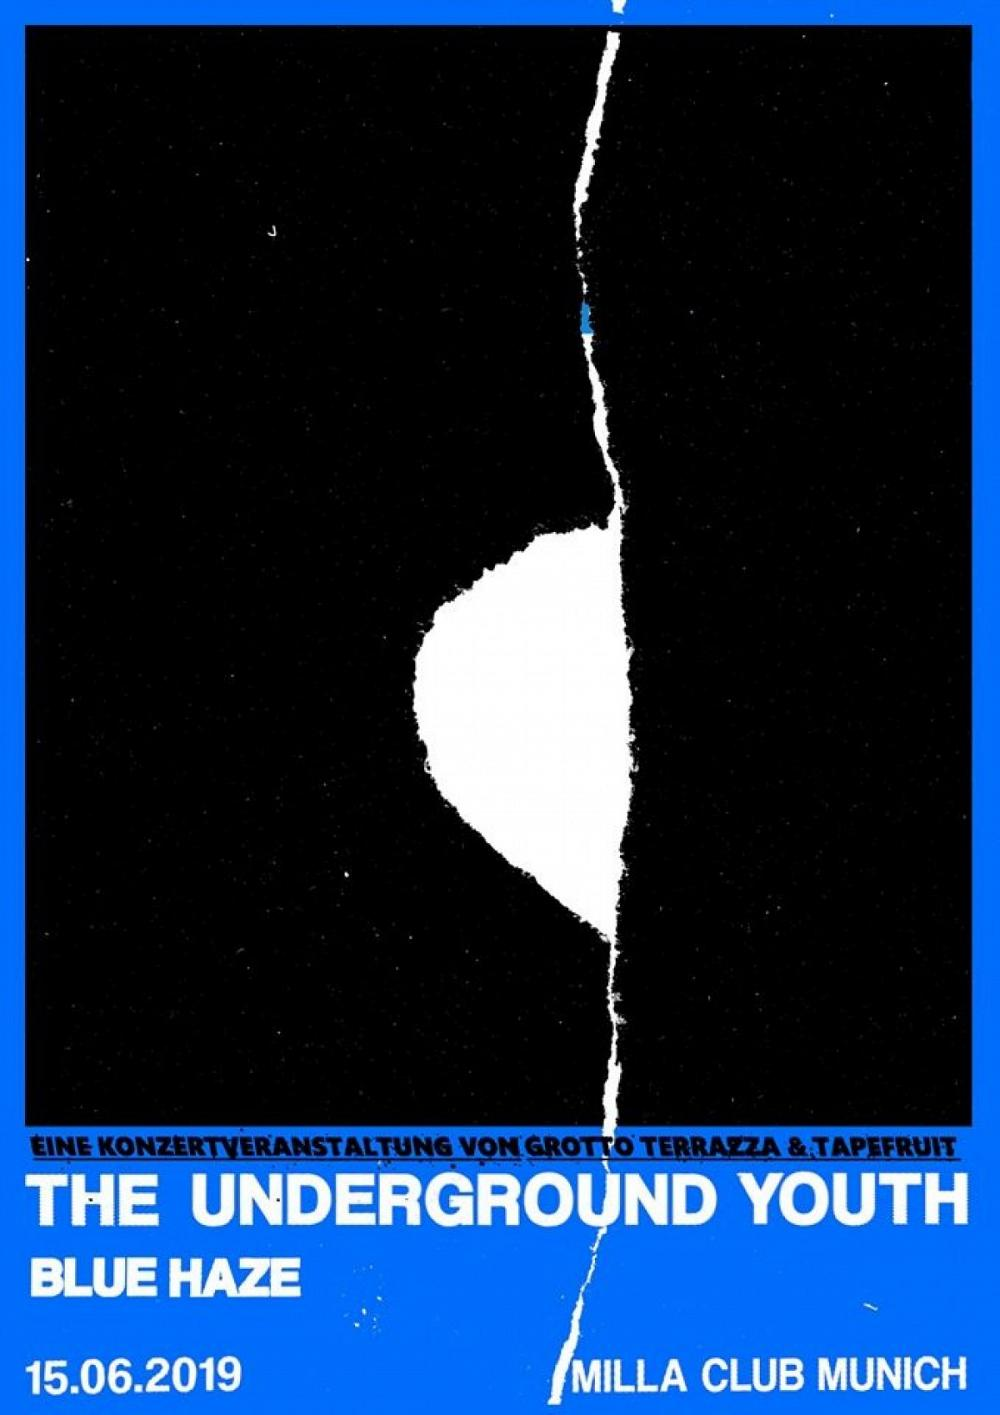 Tapefruit Konzert: The Underground Youth + Blue Haze | 15.06.2019 @ Milla Club